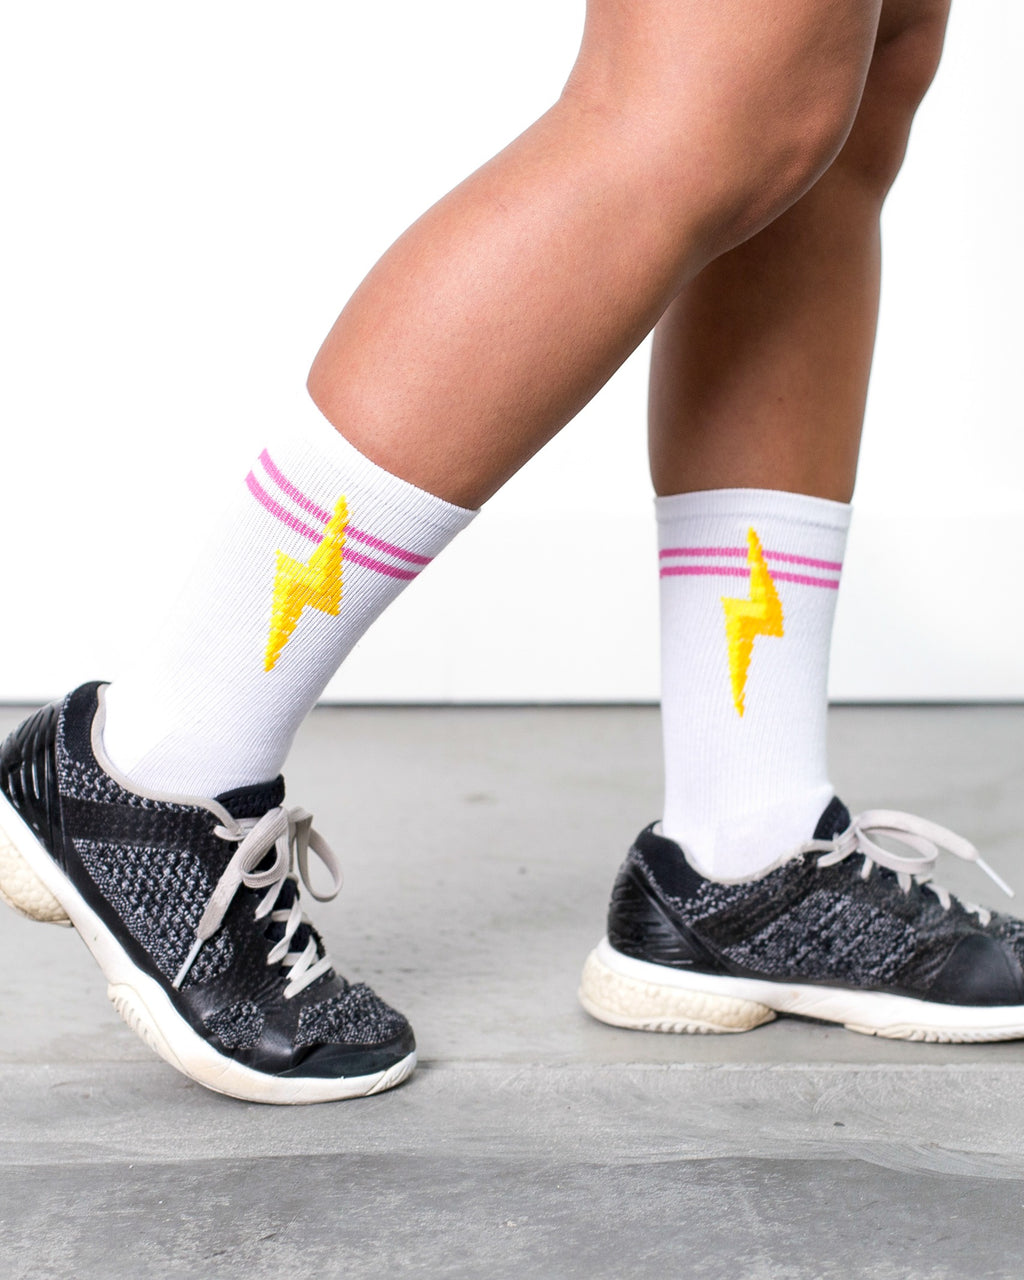 HIGH Fitness Socks